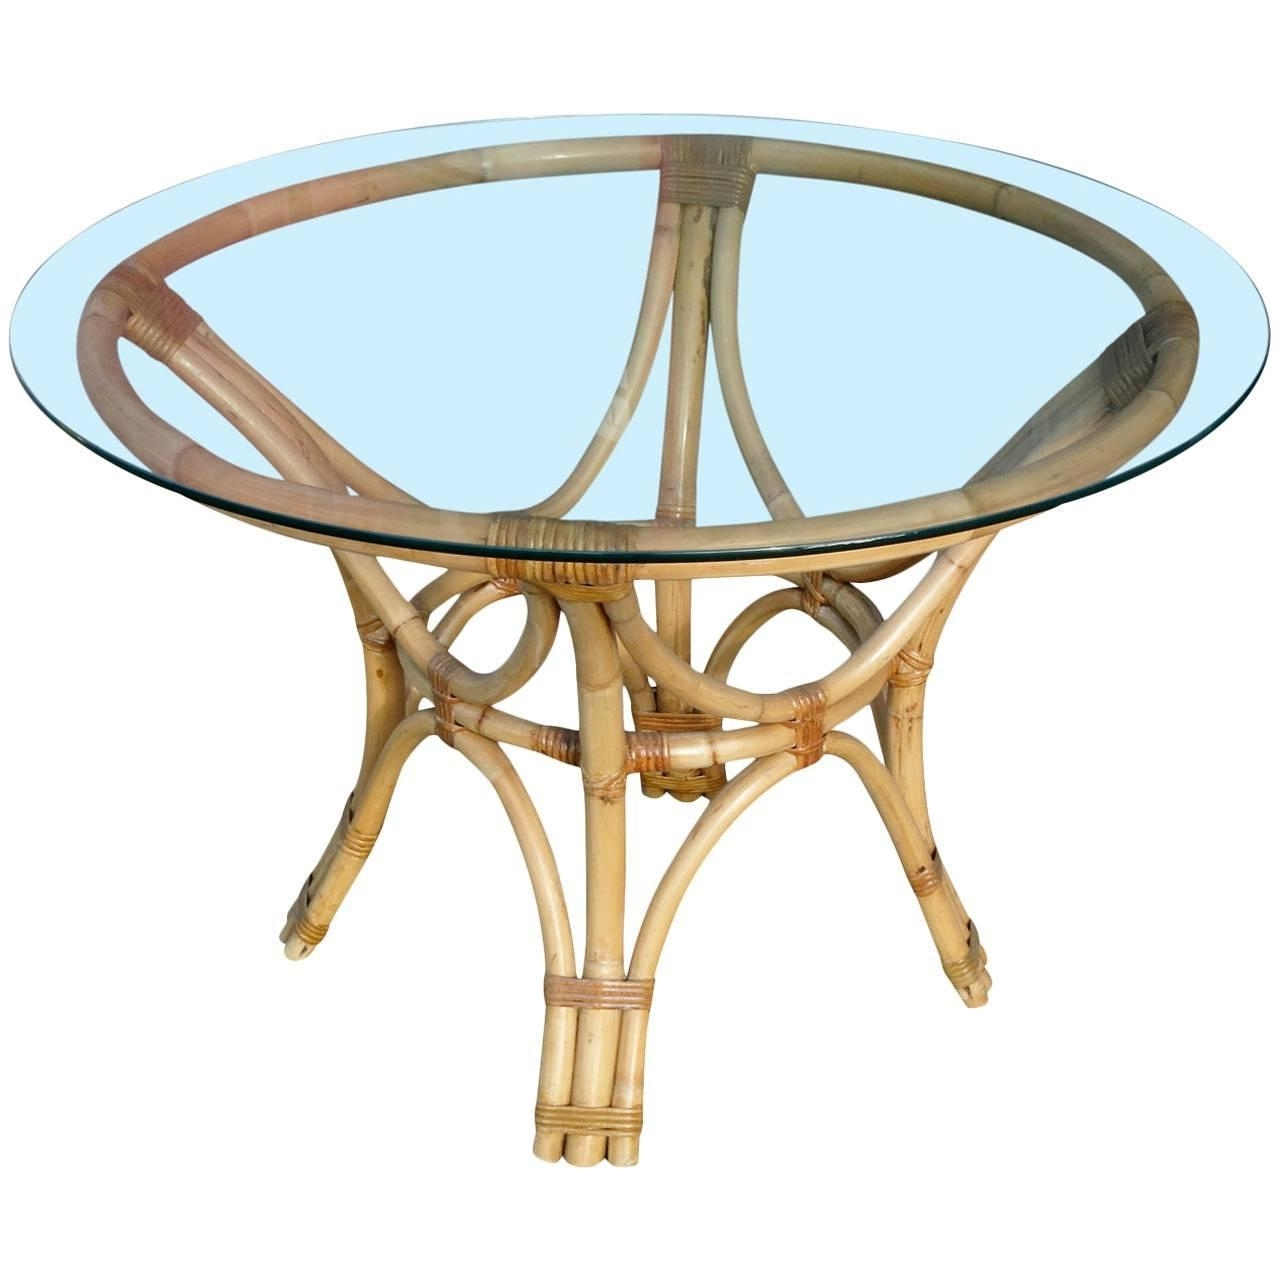 Restored Rattan Bentwood Dining Table With Round Glass Top For Sale Pertaining To Most Popular Rattan Dining Tables (View 20 of 25)